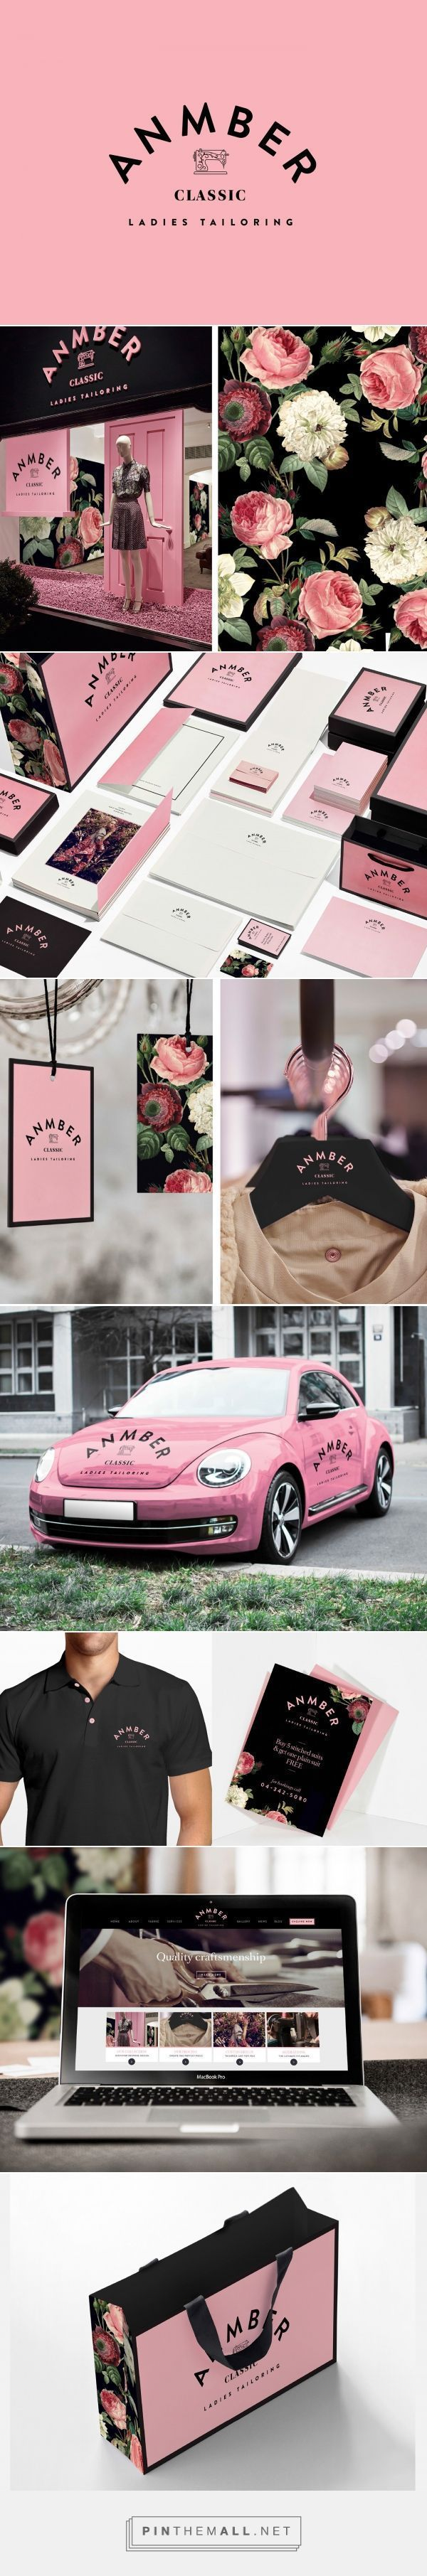 Anmber Ladies Tailor Branding by Fifth Estate | Fivestar Branding Agency – Design and Branding Agency & Curated Inspiration Gallery